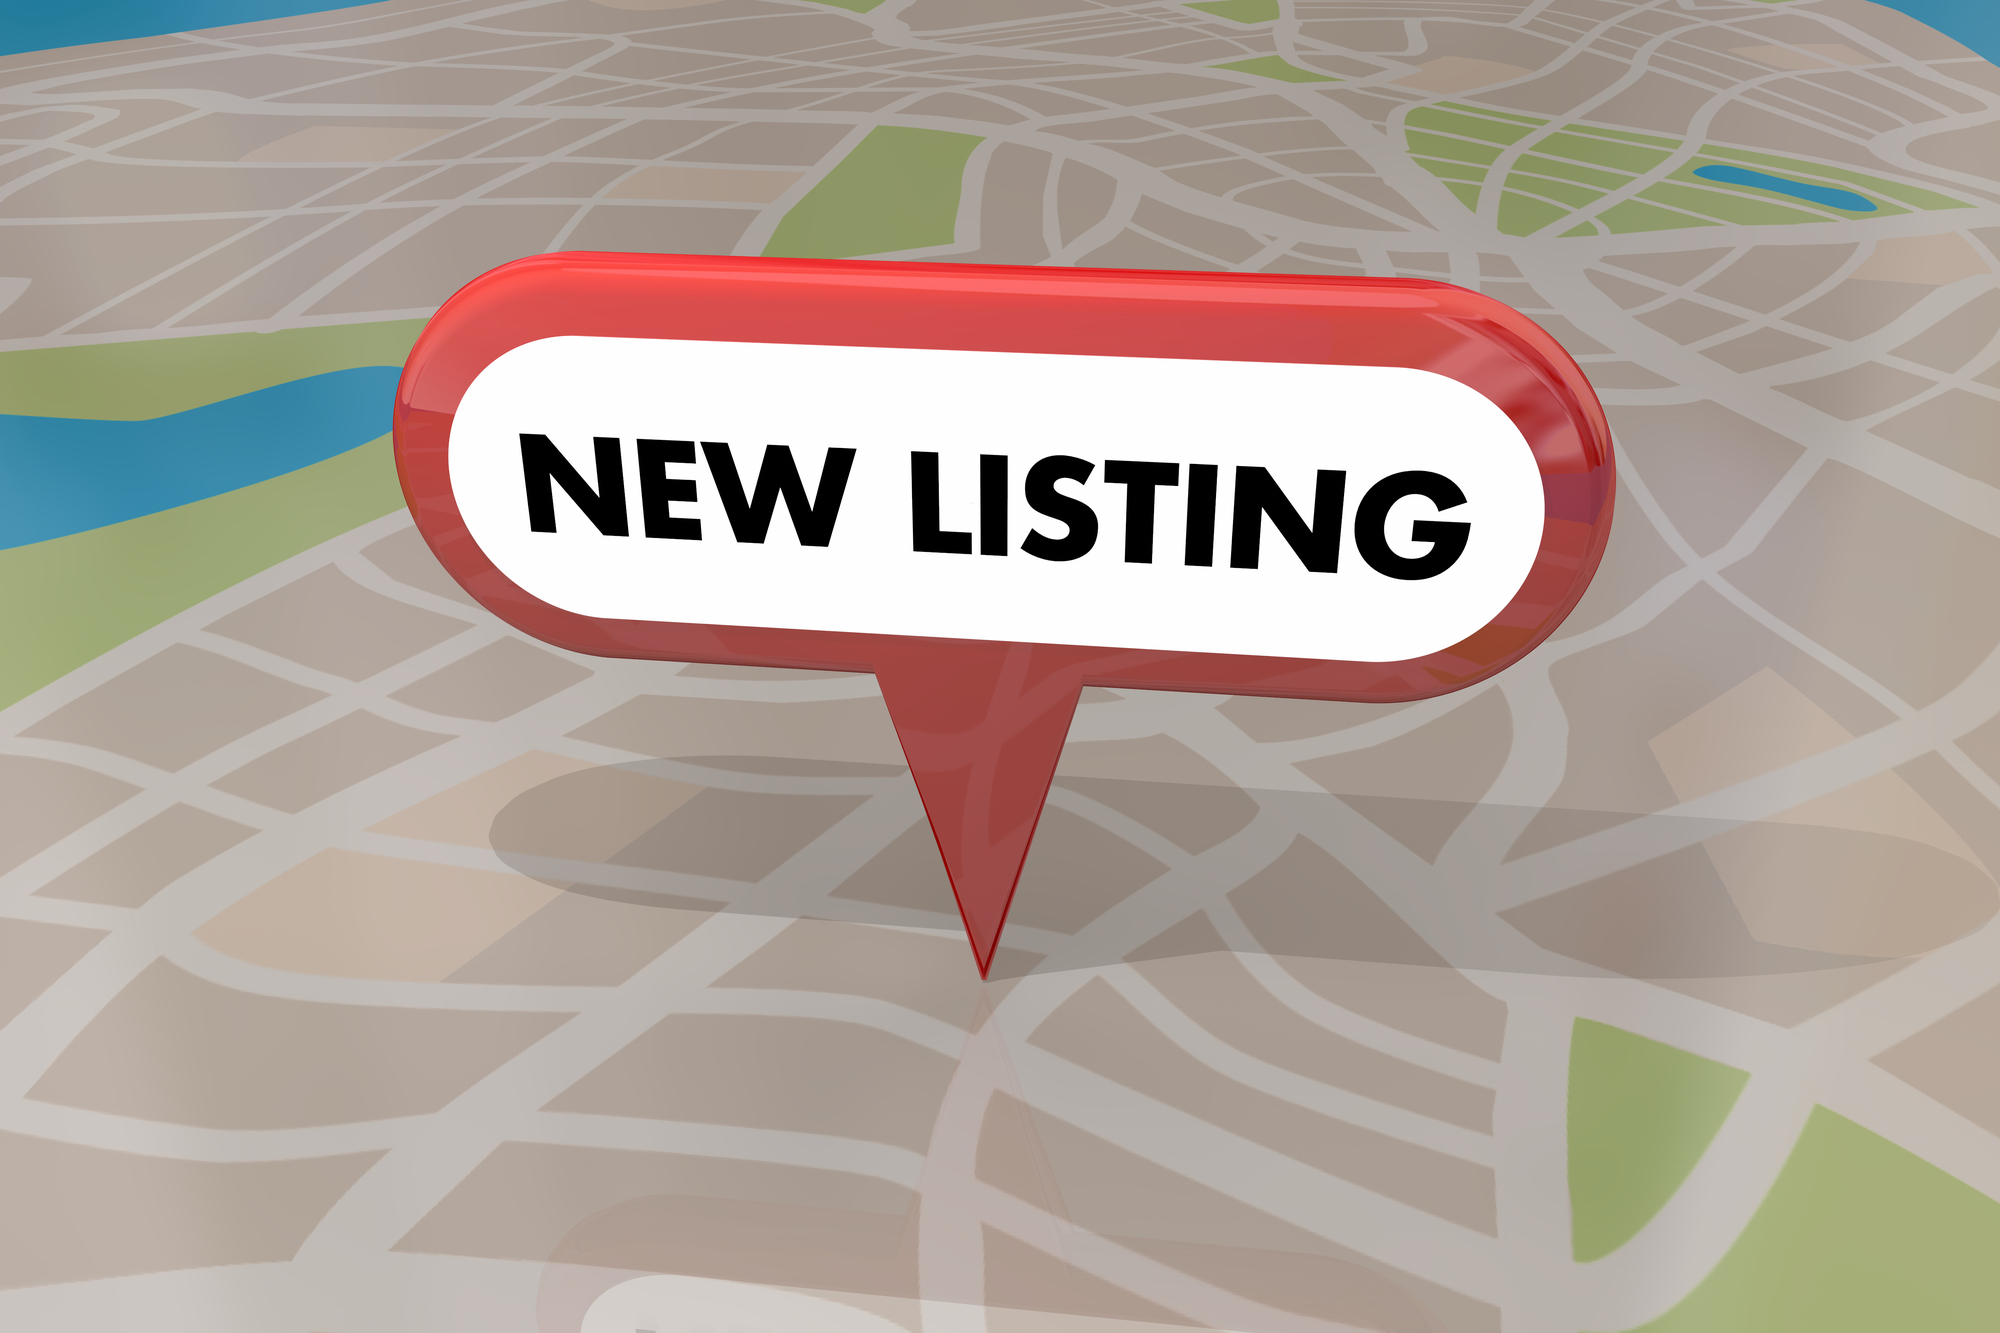 New Listing Home House for Sale Real Estate